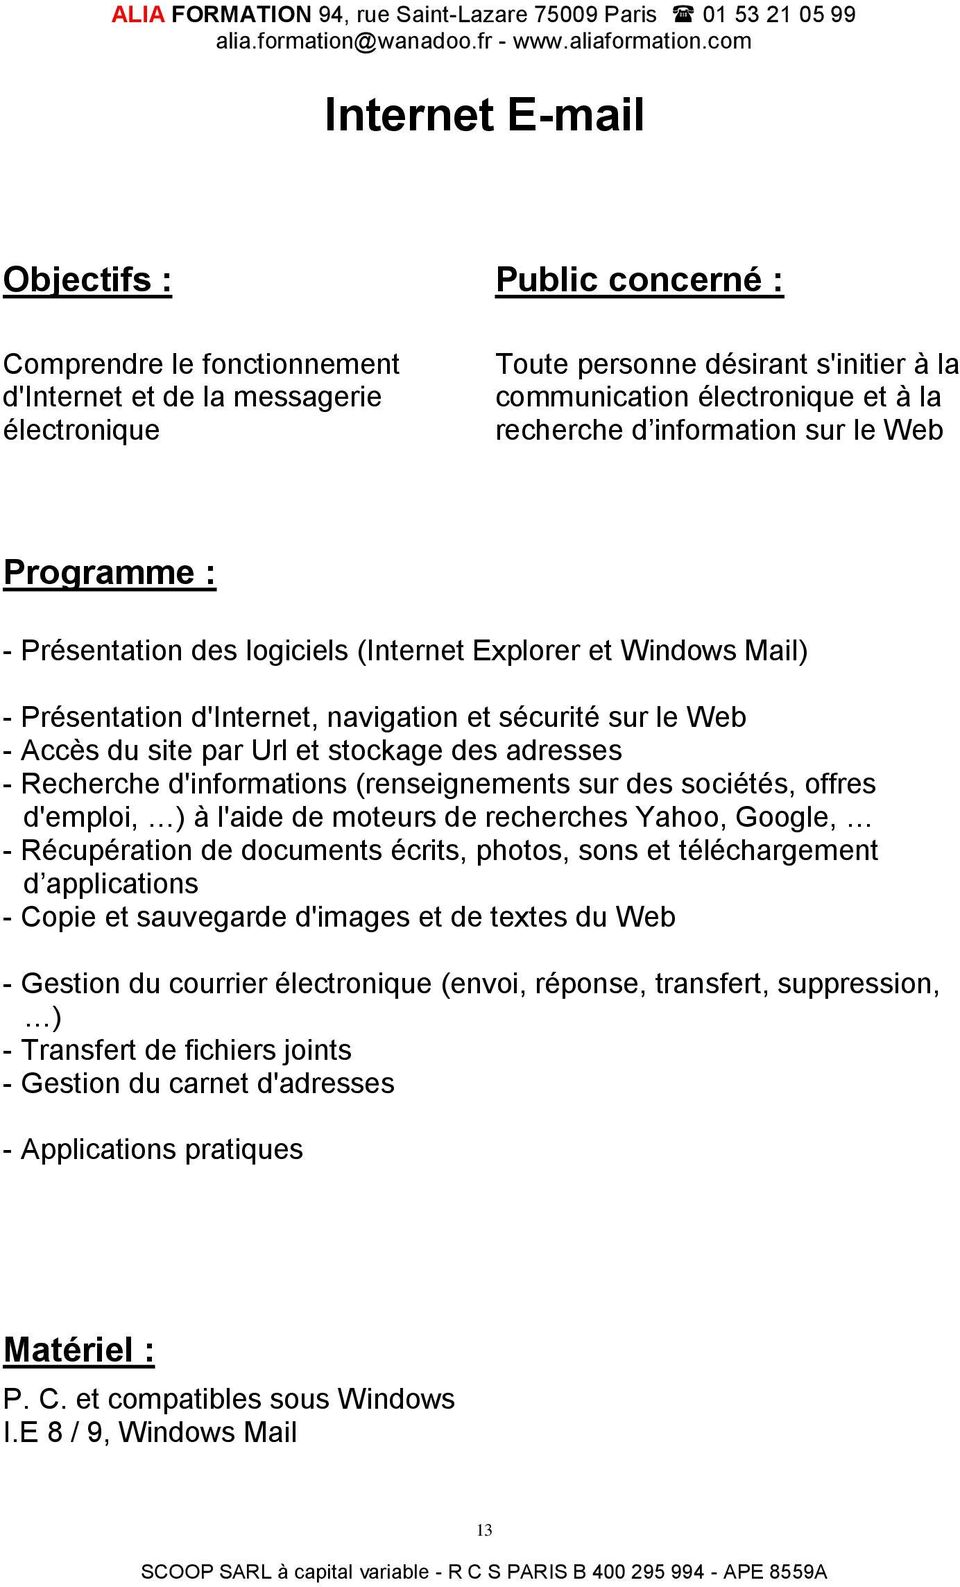 (renseignements sur des sociétés, offres d'emploi, ) à l'aide de moteurs de recherches Yahoo, Google, - Récupération de documents écrits, photos, sons et téléchargement d applications - Copie et